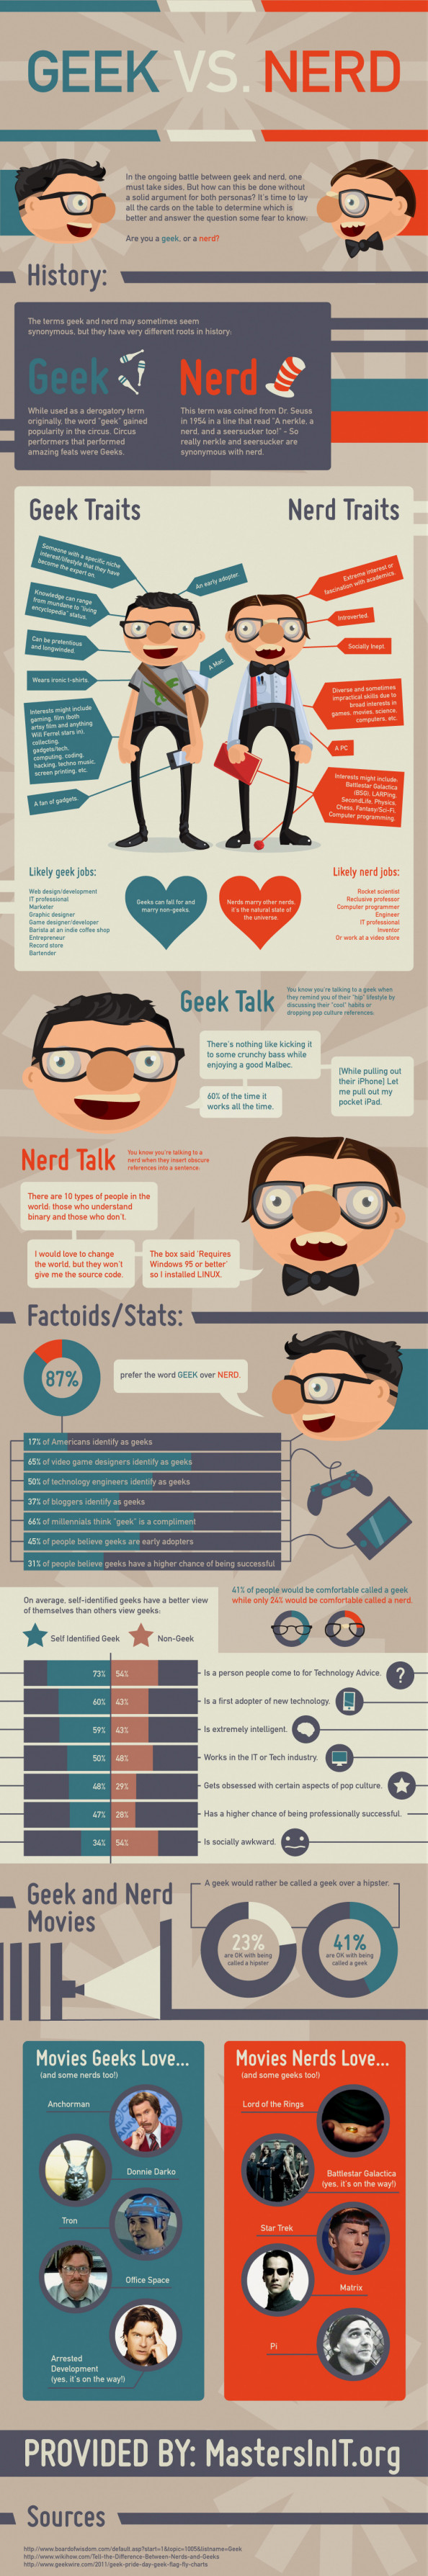 Geek vs Nerd Infographic